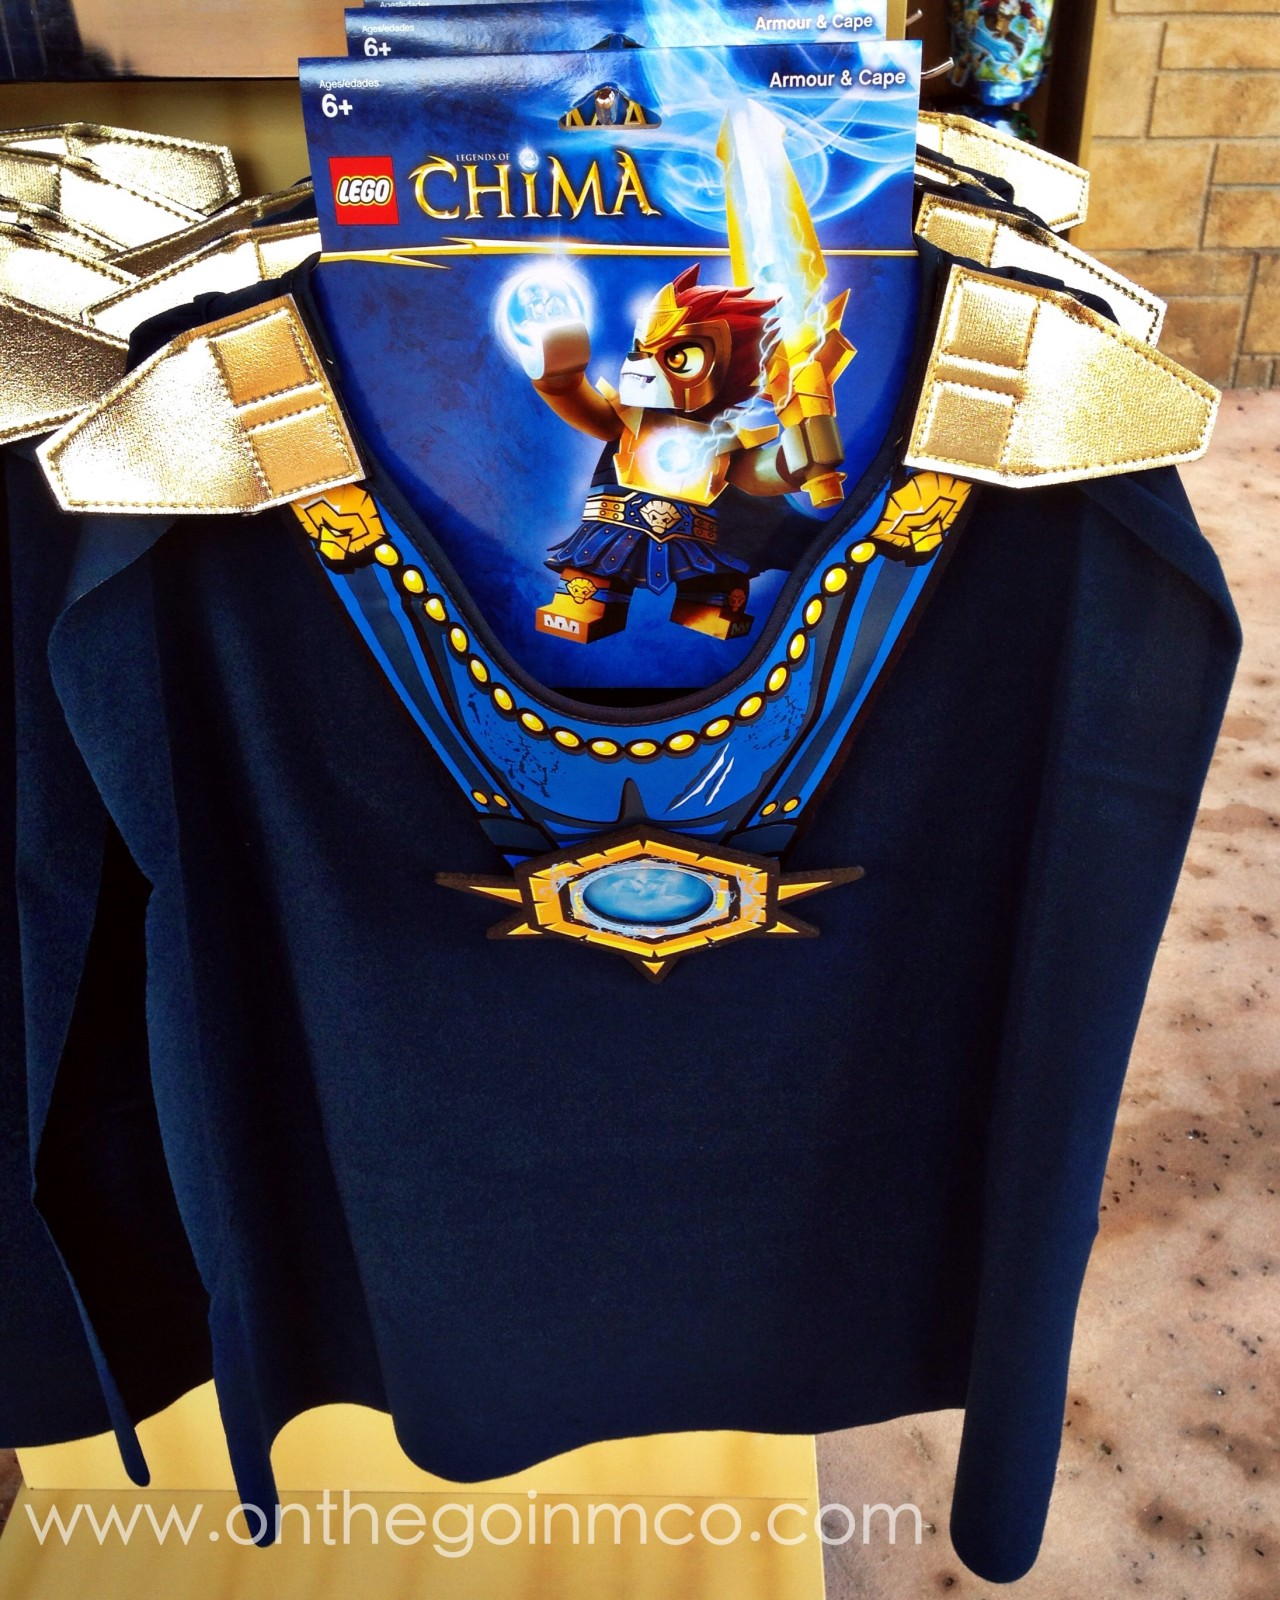 The World of Chima